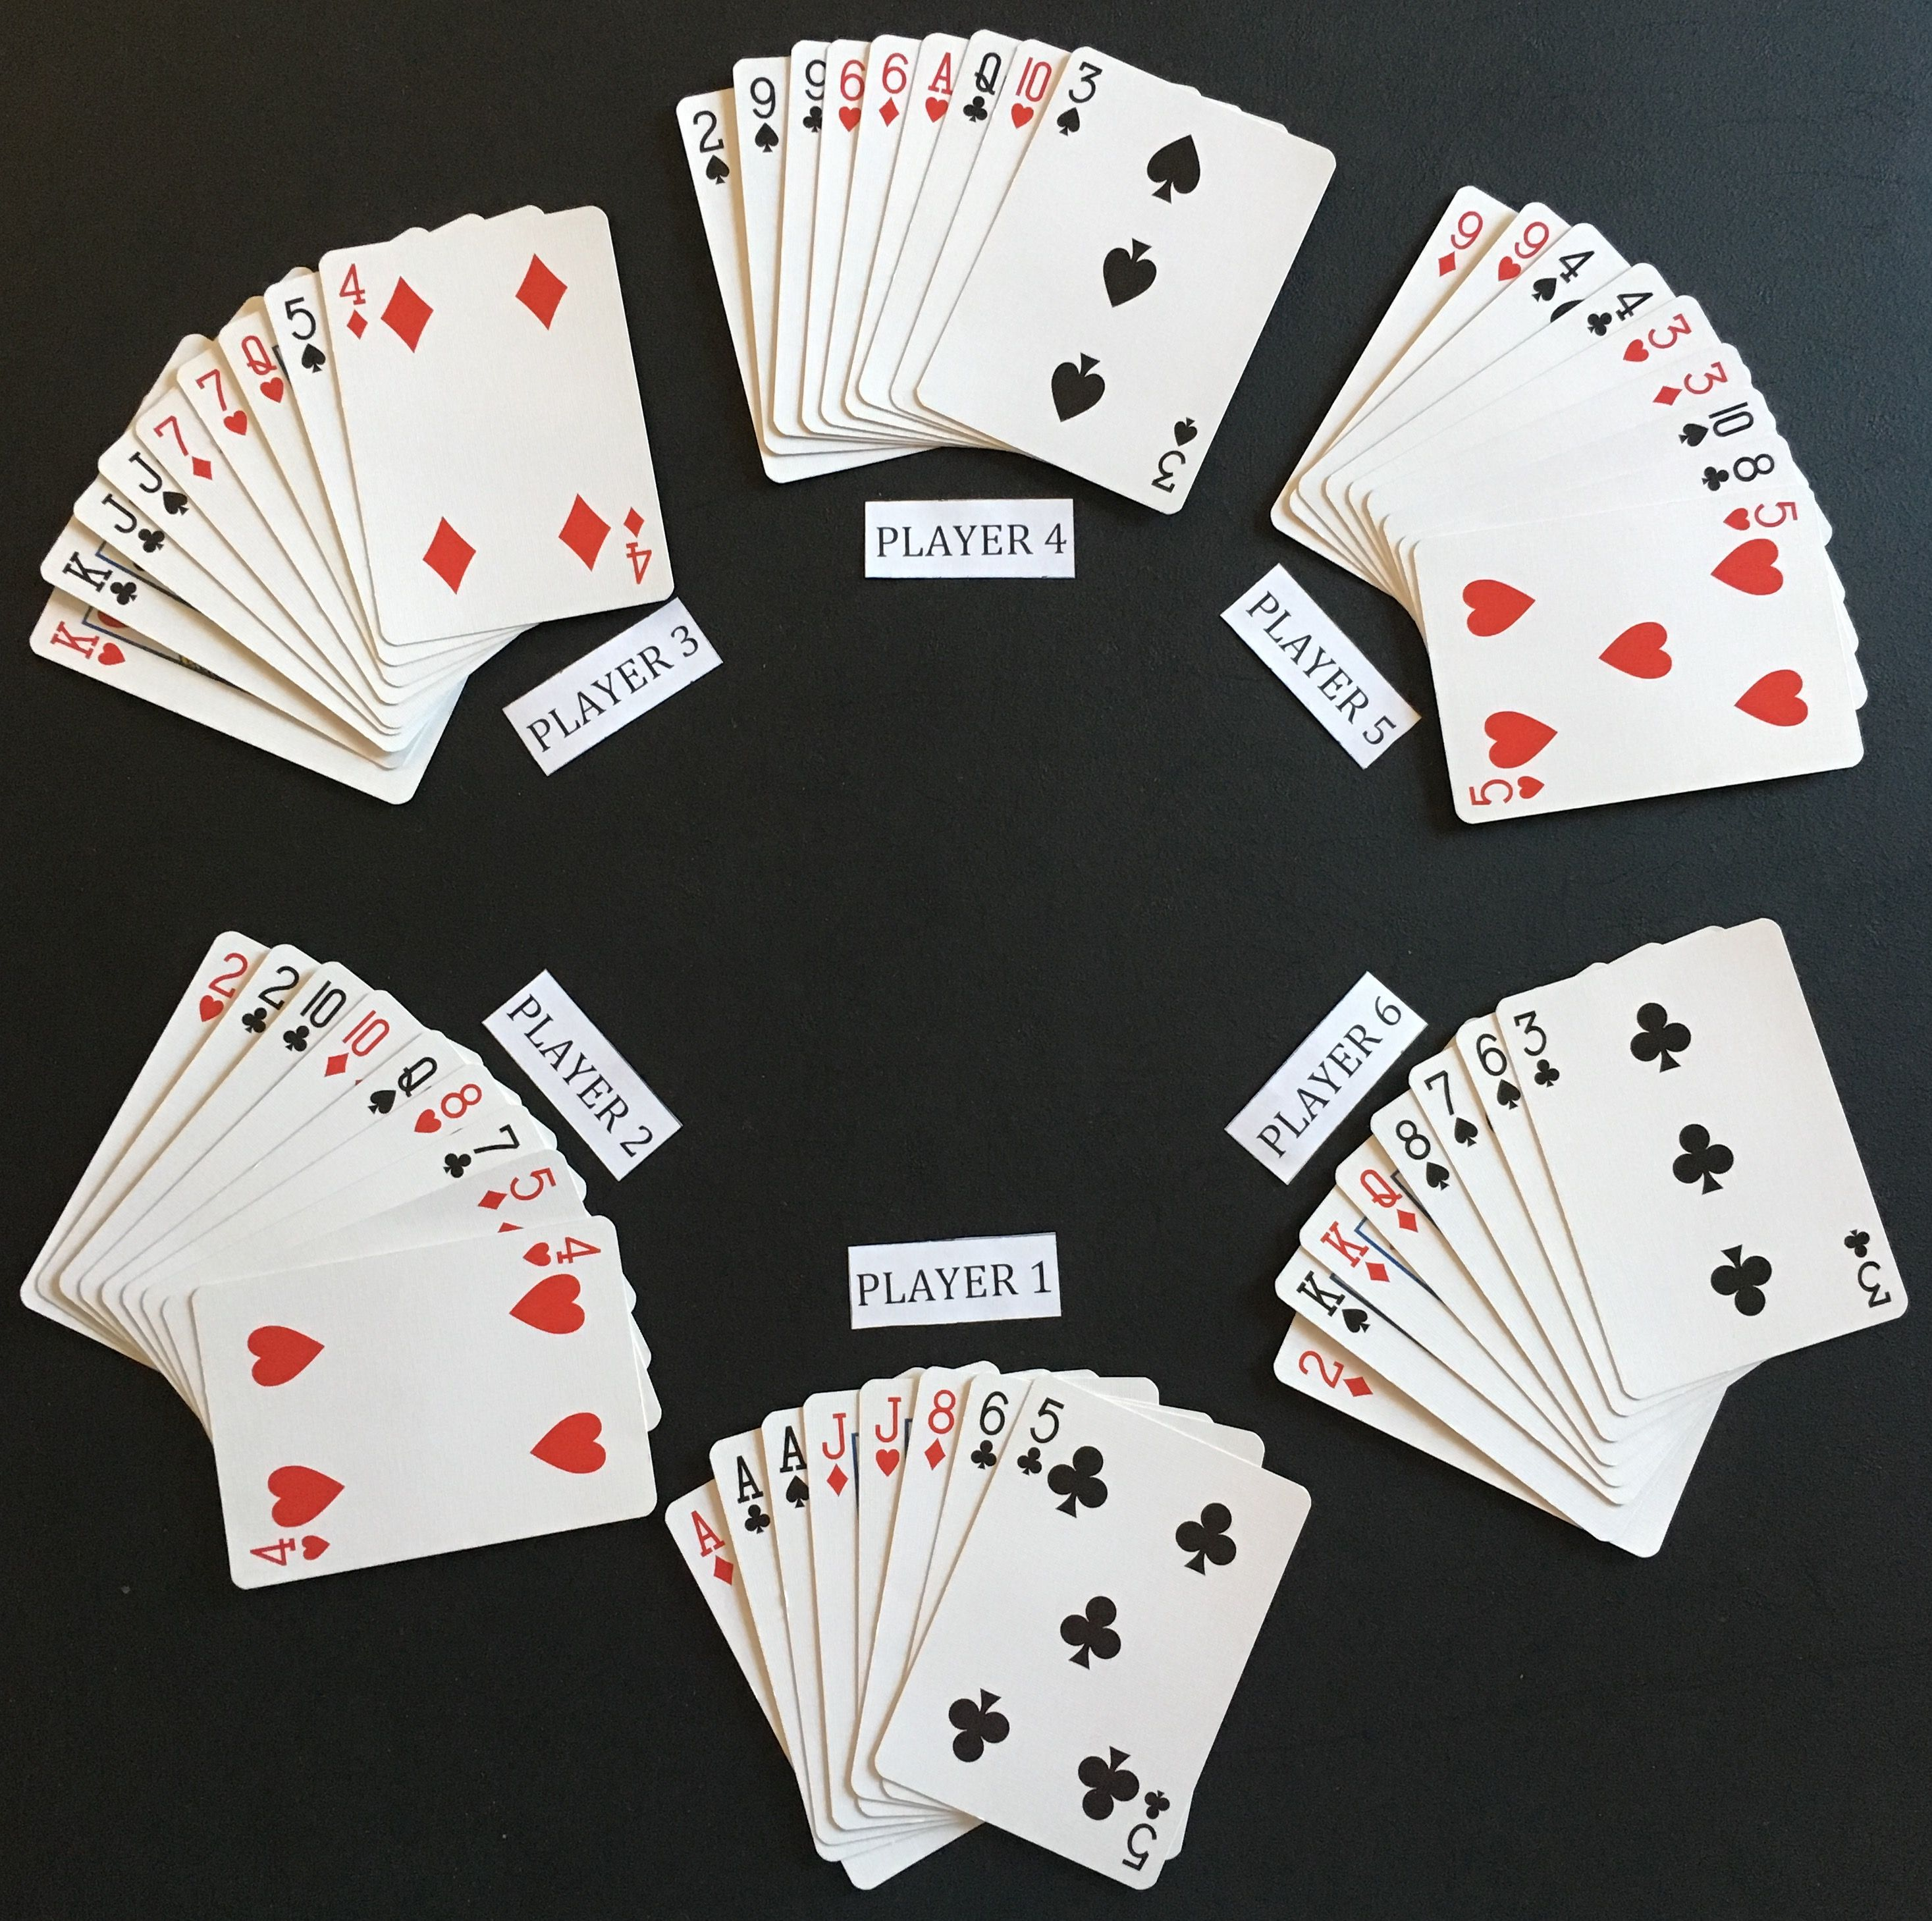 How to Play President #president #cardgames #playingcards #cards ...